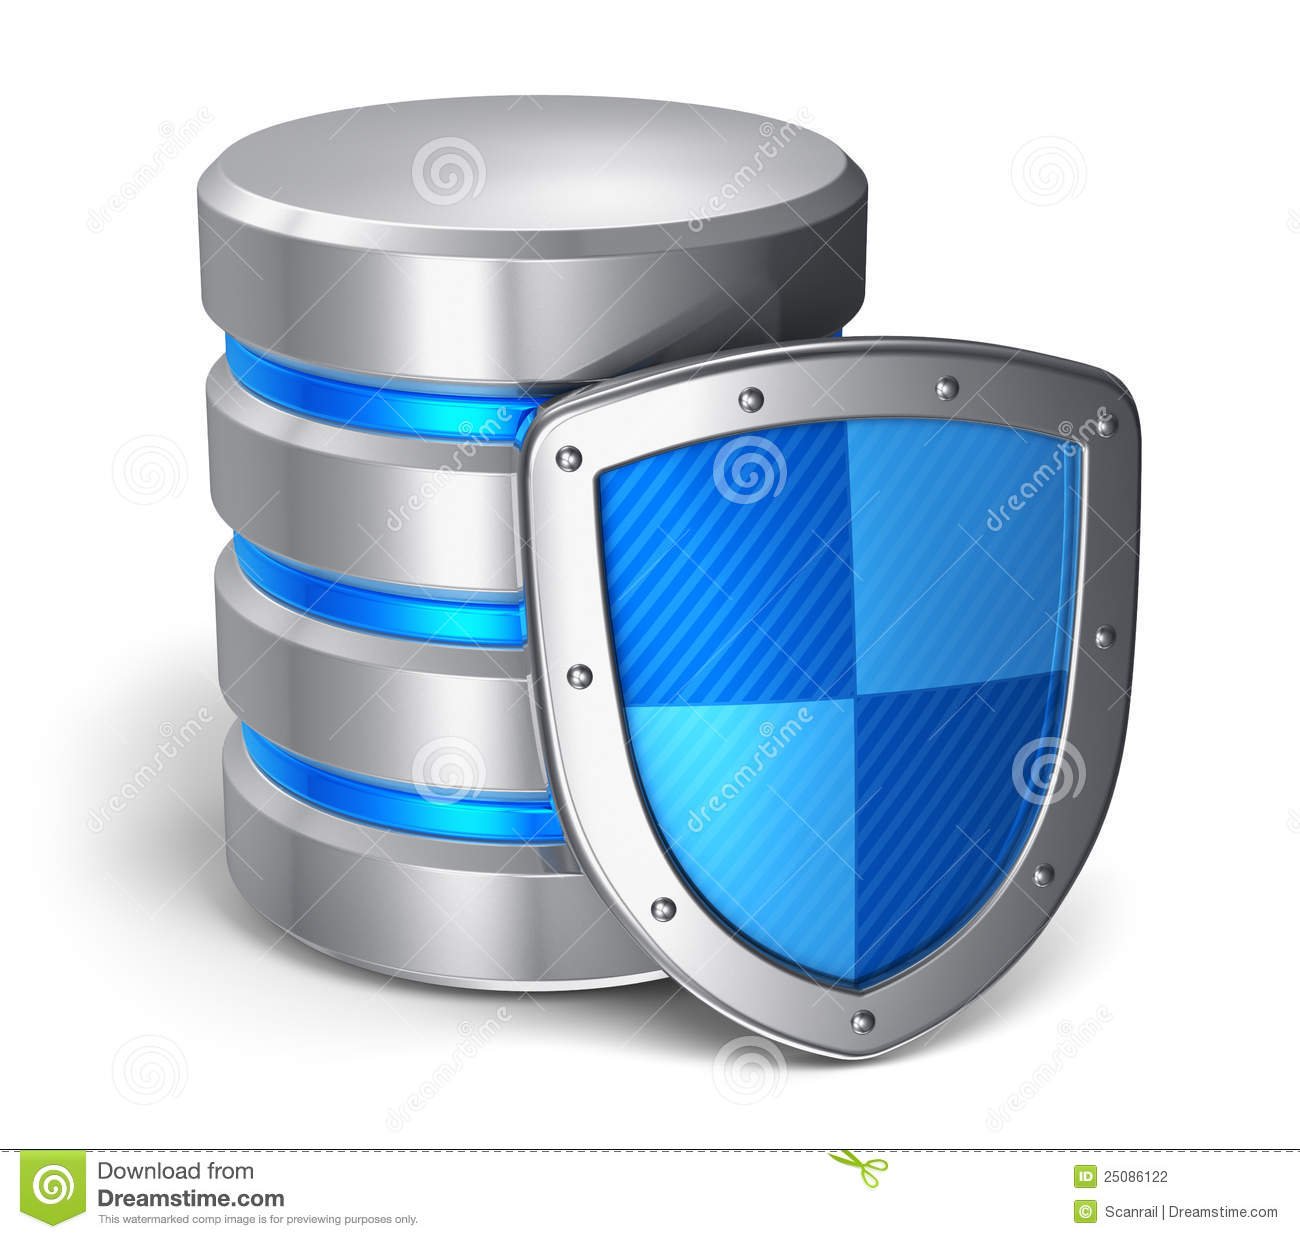 how to make data security